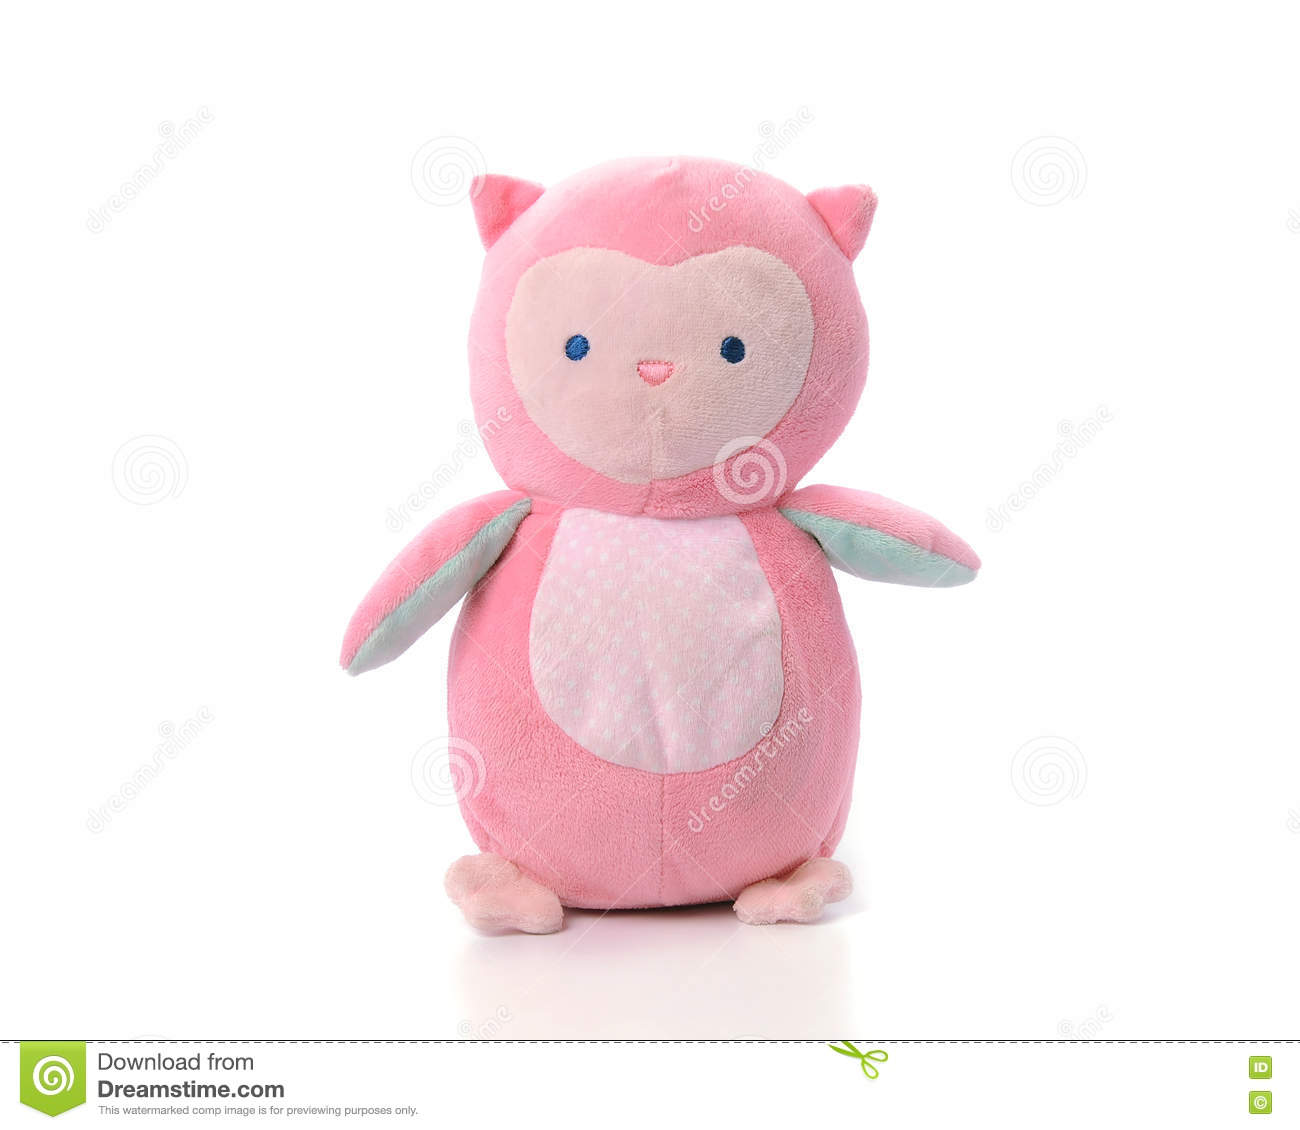 Beautiful pink doll on a white background stock image image of.